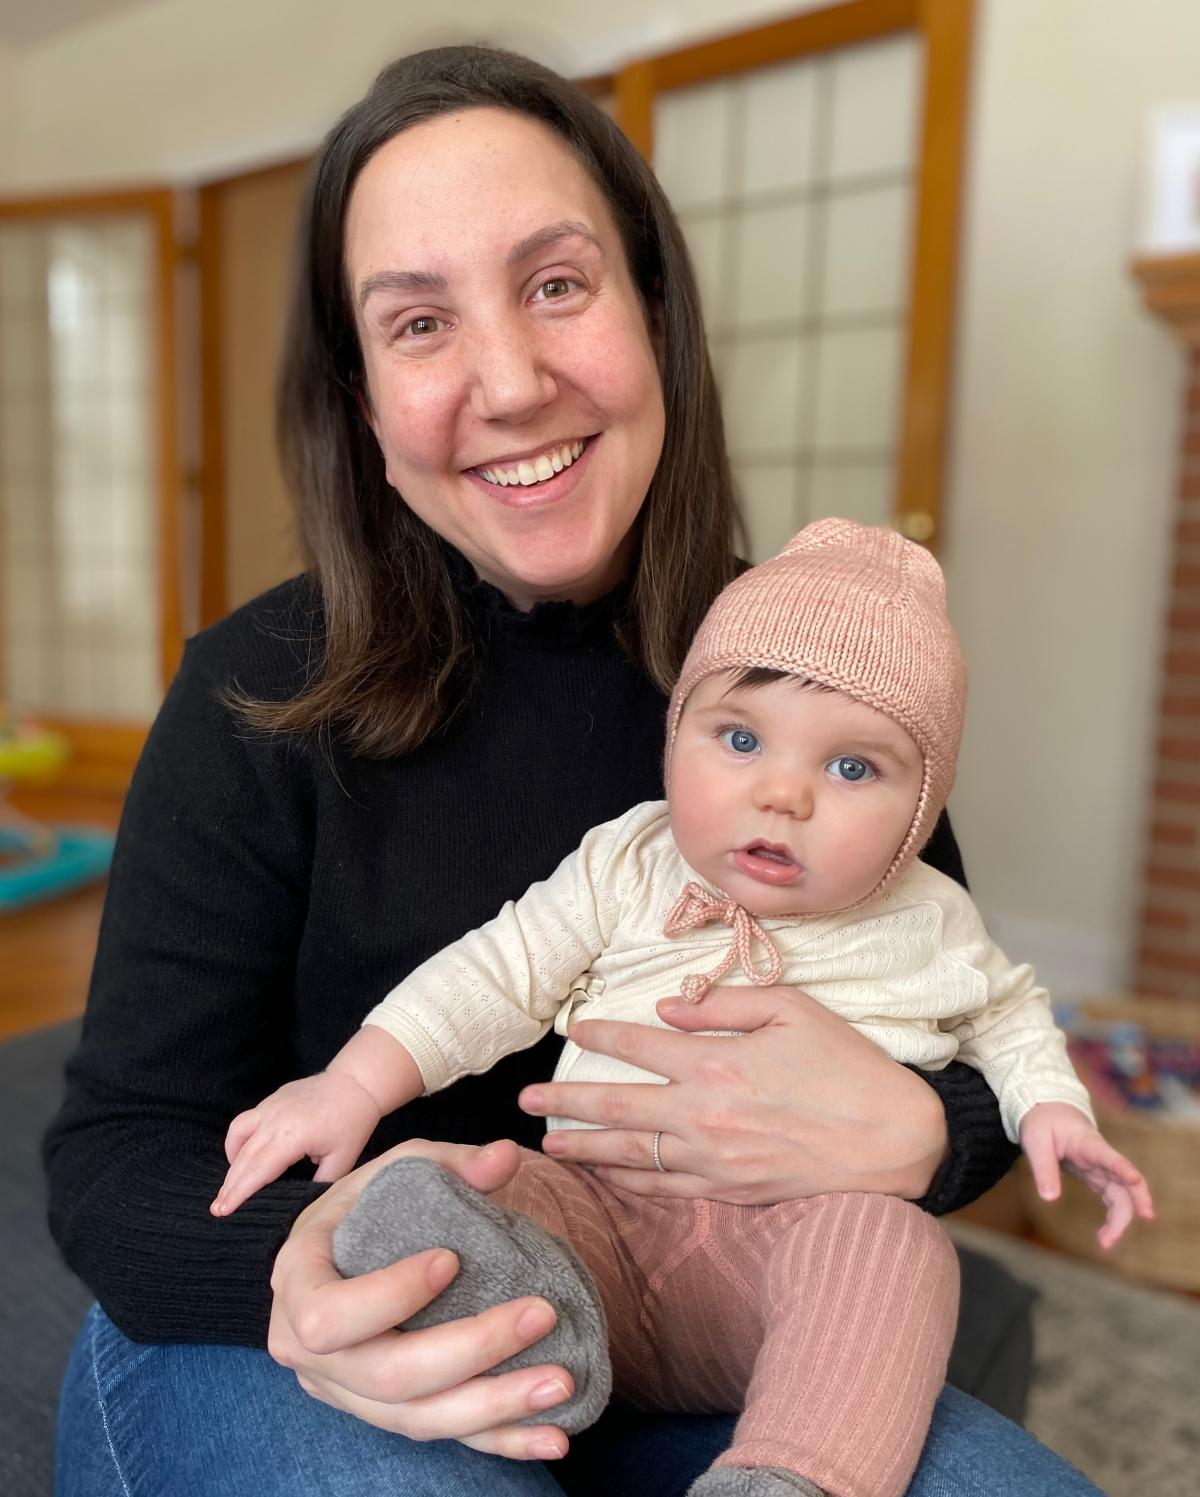 Sheera Talpaz, seen with her daughter Ruby, is buying her first house in Oberlin, Ohio. Low interest rates will make the mortgage payment lower than her previous rent in California, Talpaz says.